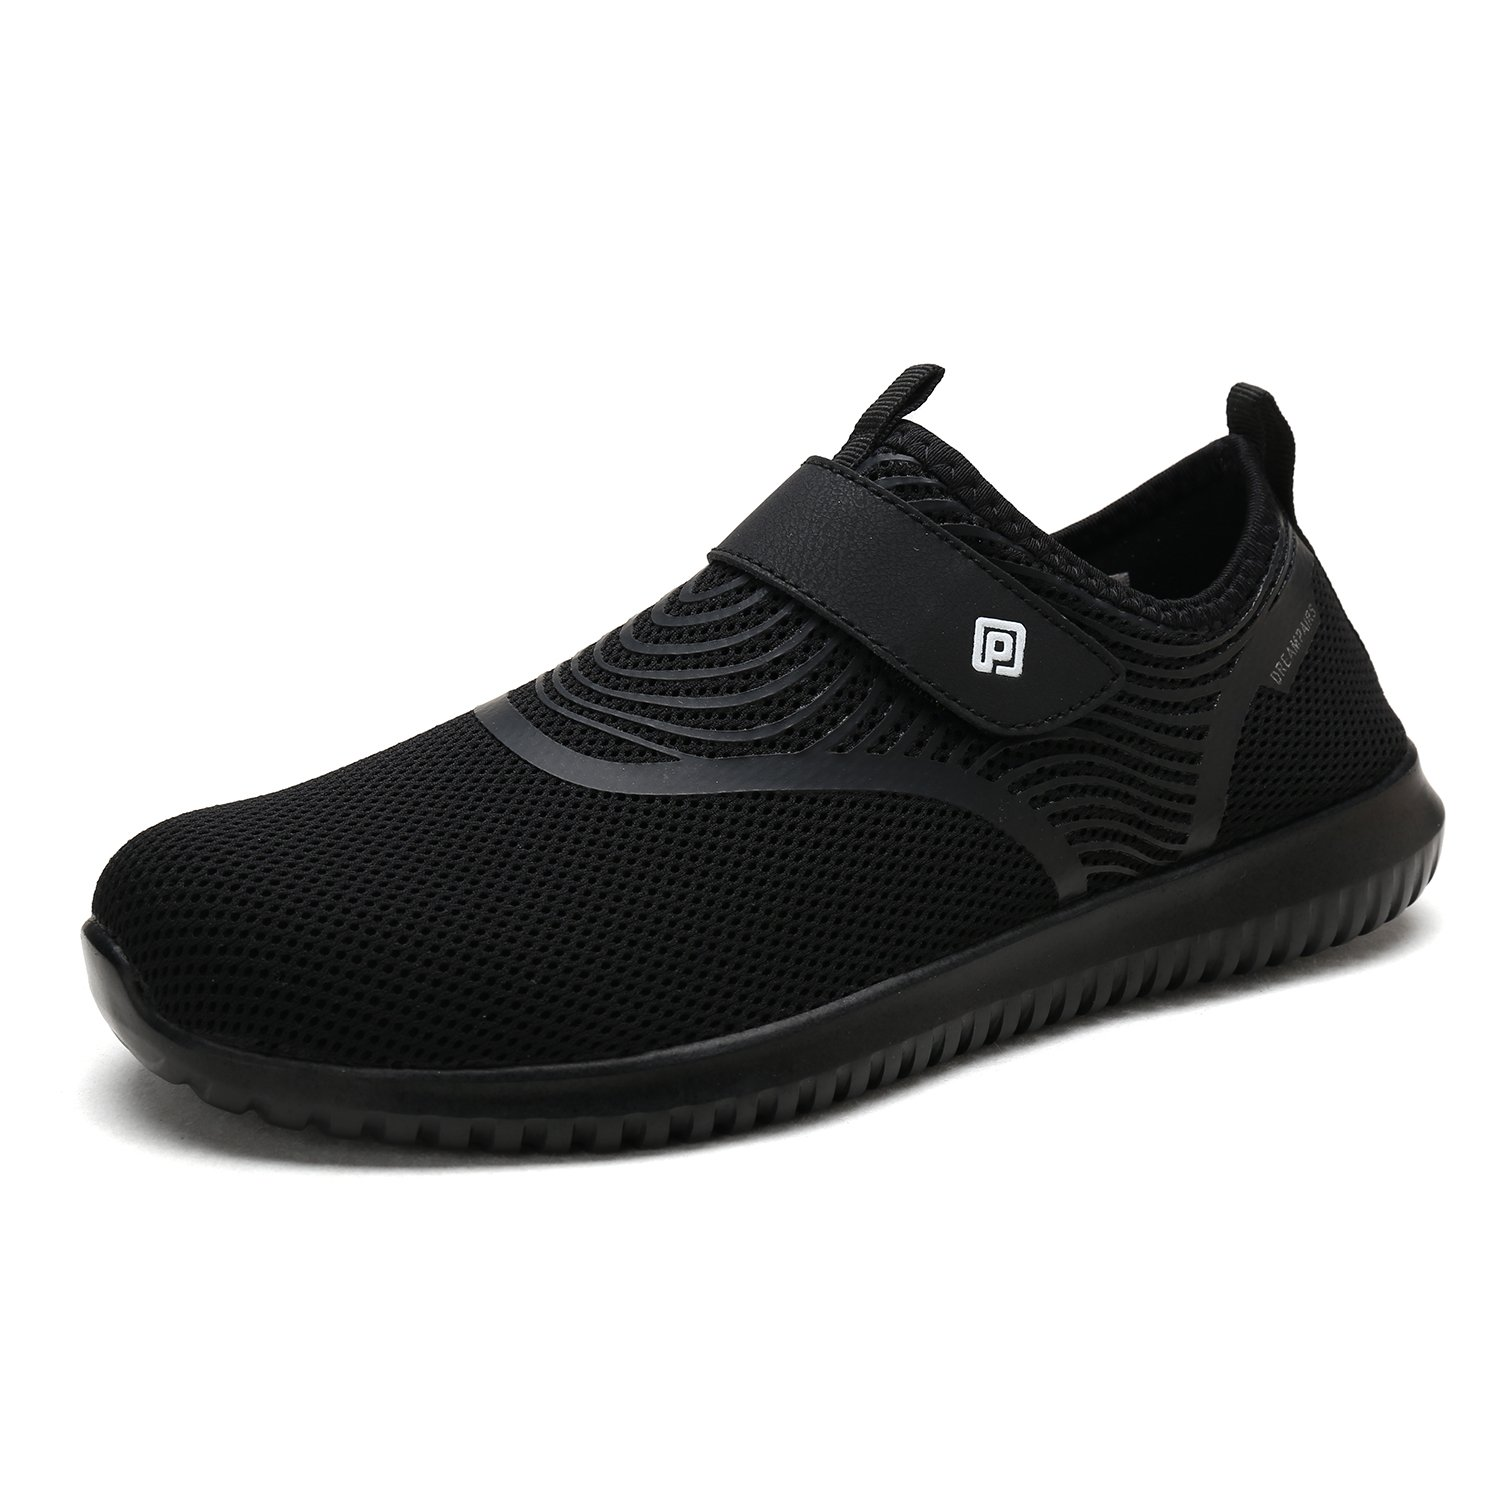 DREAM PAIRS Women's C0210_W Black White Fashion Athletic Water Shoes Sneakers Size 8 M US